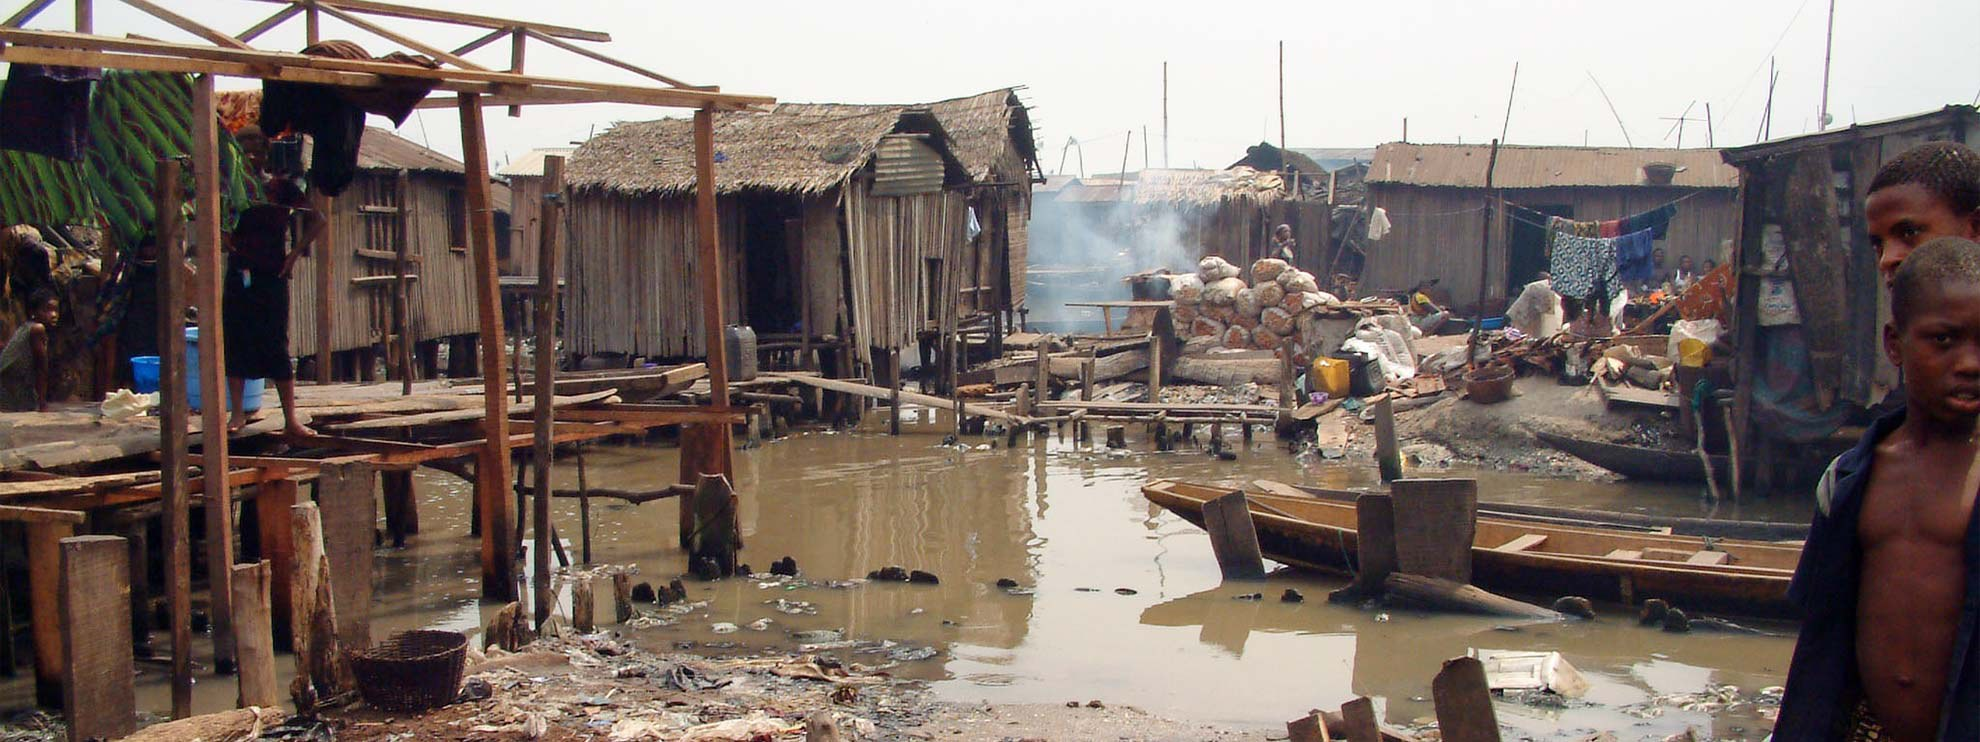 Slum in Makoko (Lagos, Nigeria) © Amnesty International